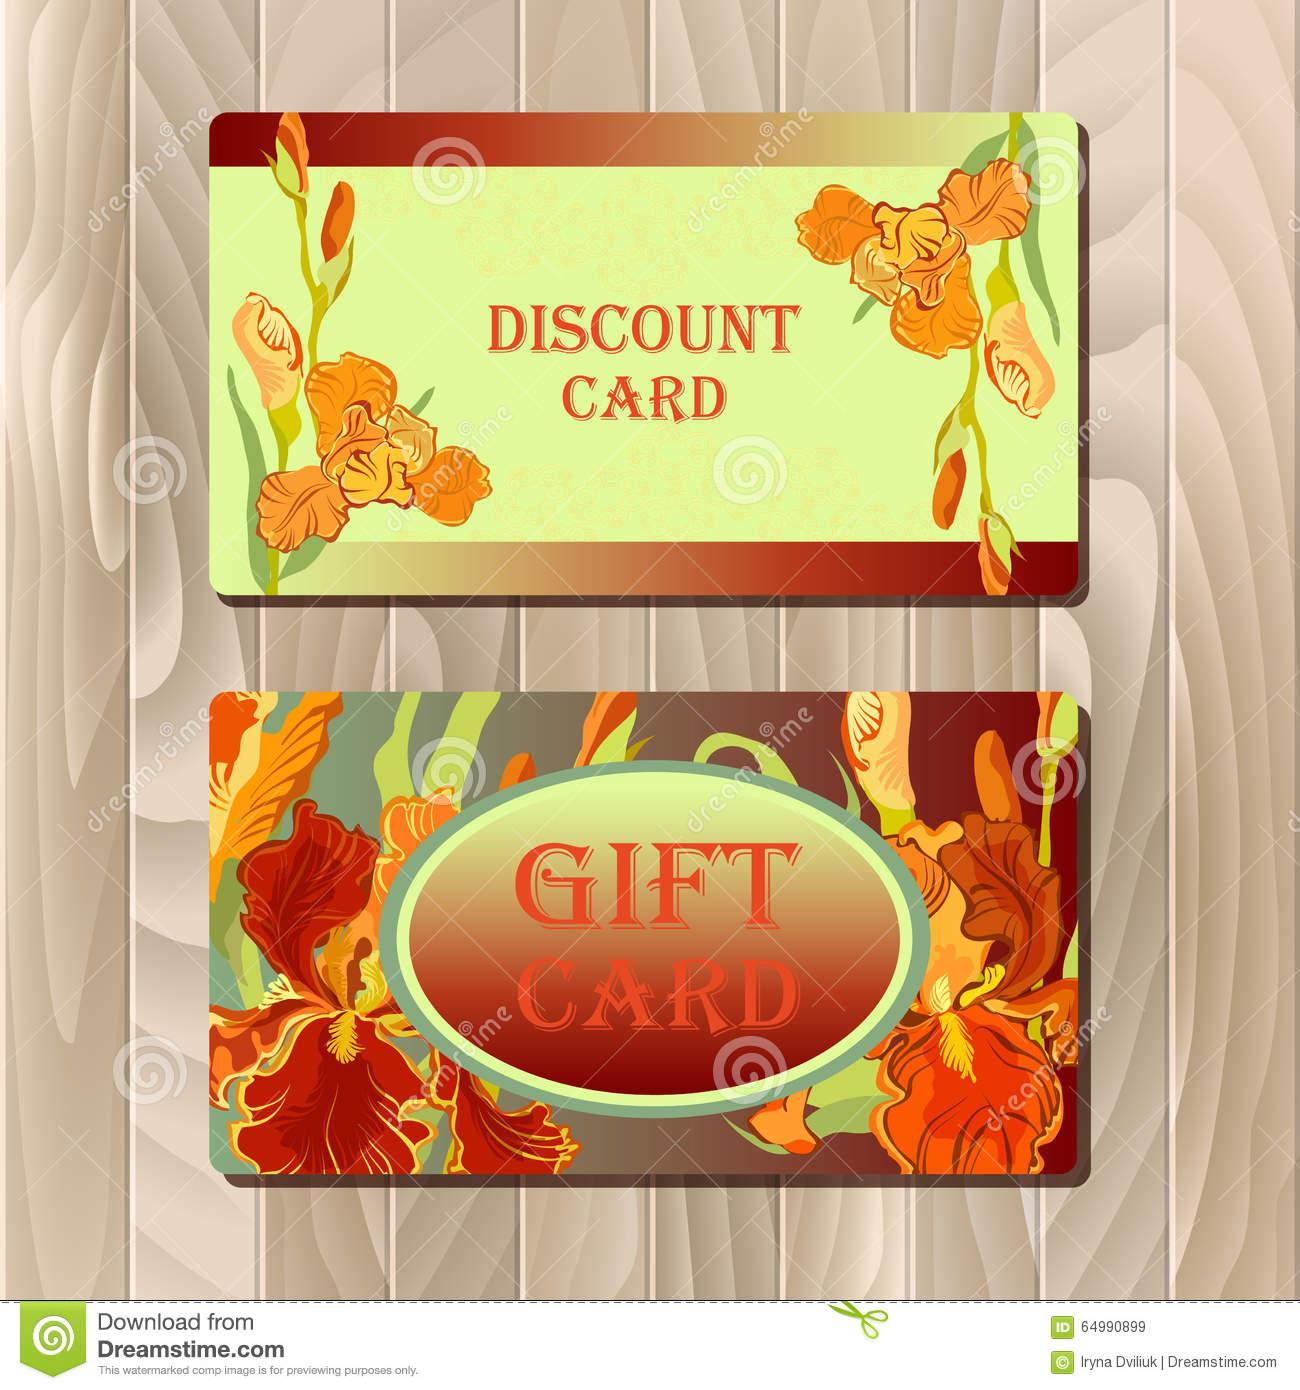 Discount cards are a remarkable marketing tool used to advertise to and upsell customers Encourage first time buyers to buy, thank, and retain current customers while boosting sales as a whole. Discount Cards are also a great fundraising opportunity.